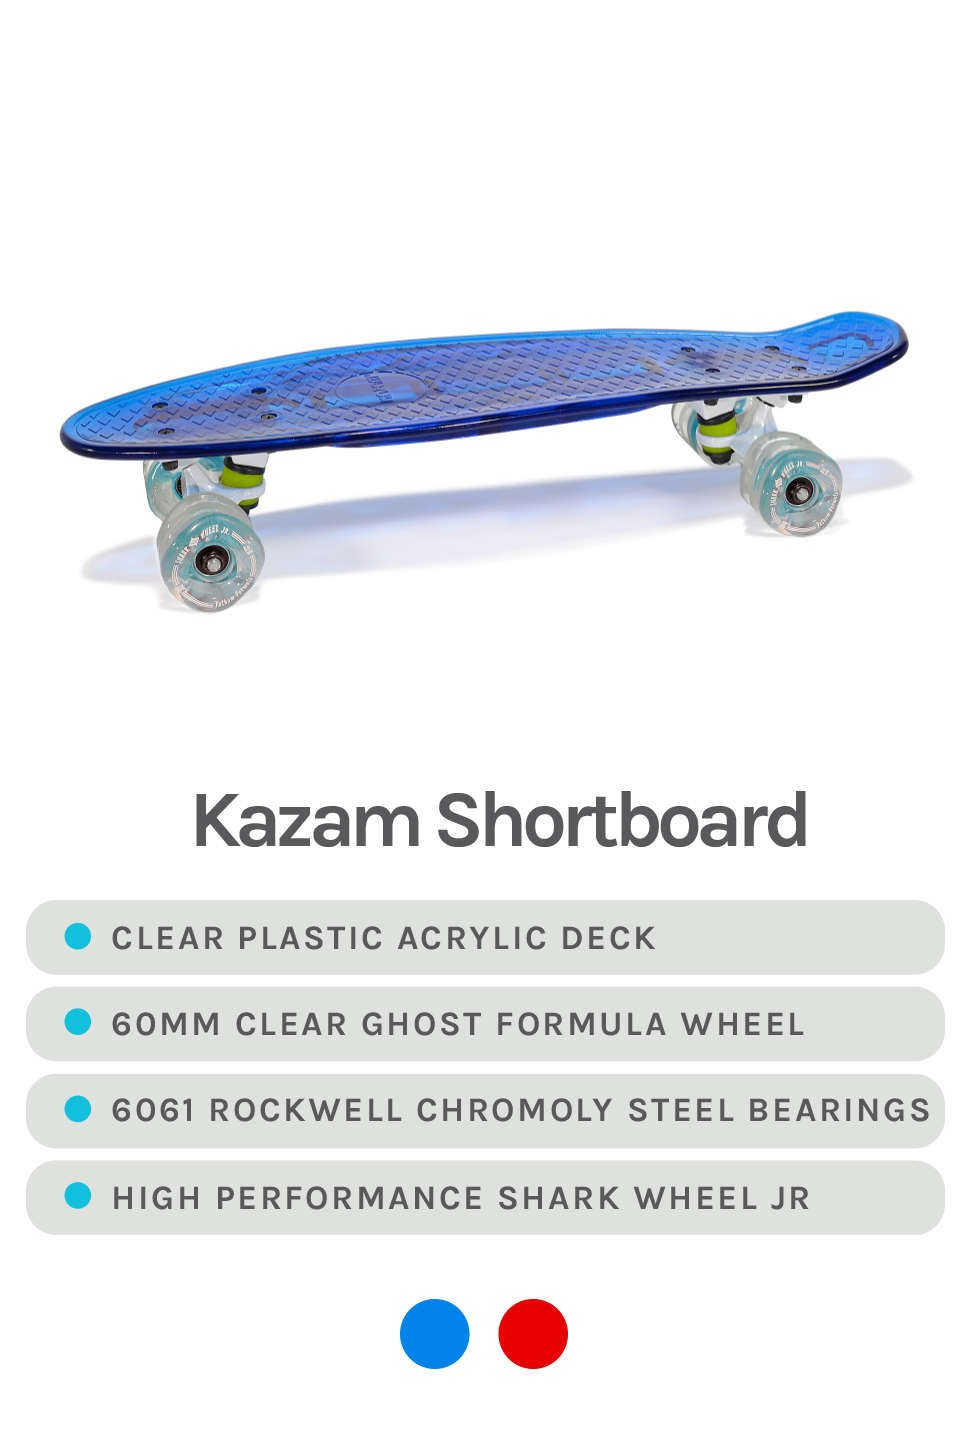 Blue Kazam Shortboard Featured - Specs - Clear plastic acrylic deck, 60mm clear ghost formula wheel, 6061 Rockwell Chromoly Steel Bearings, High performance Shark Wheel Jr - Available in Colors Blue and Red